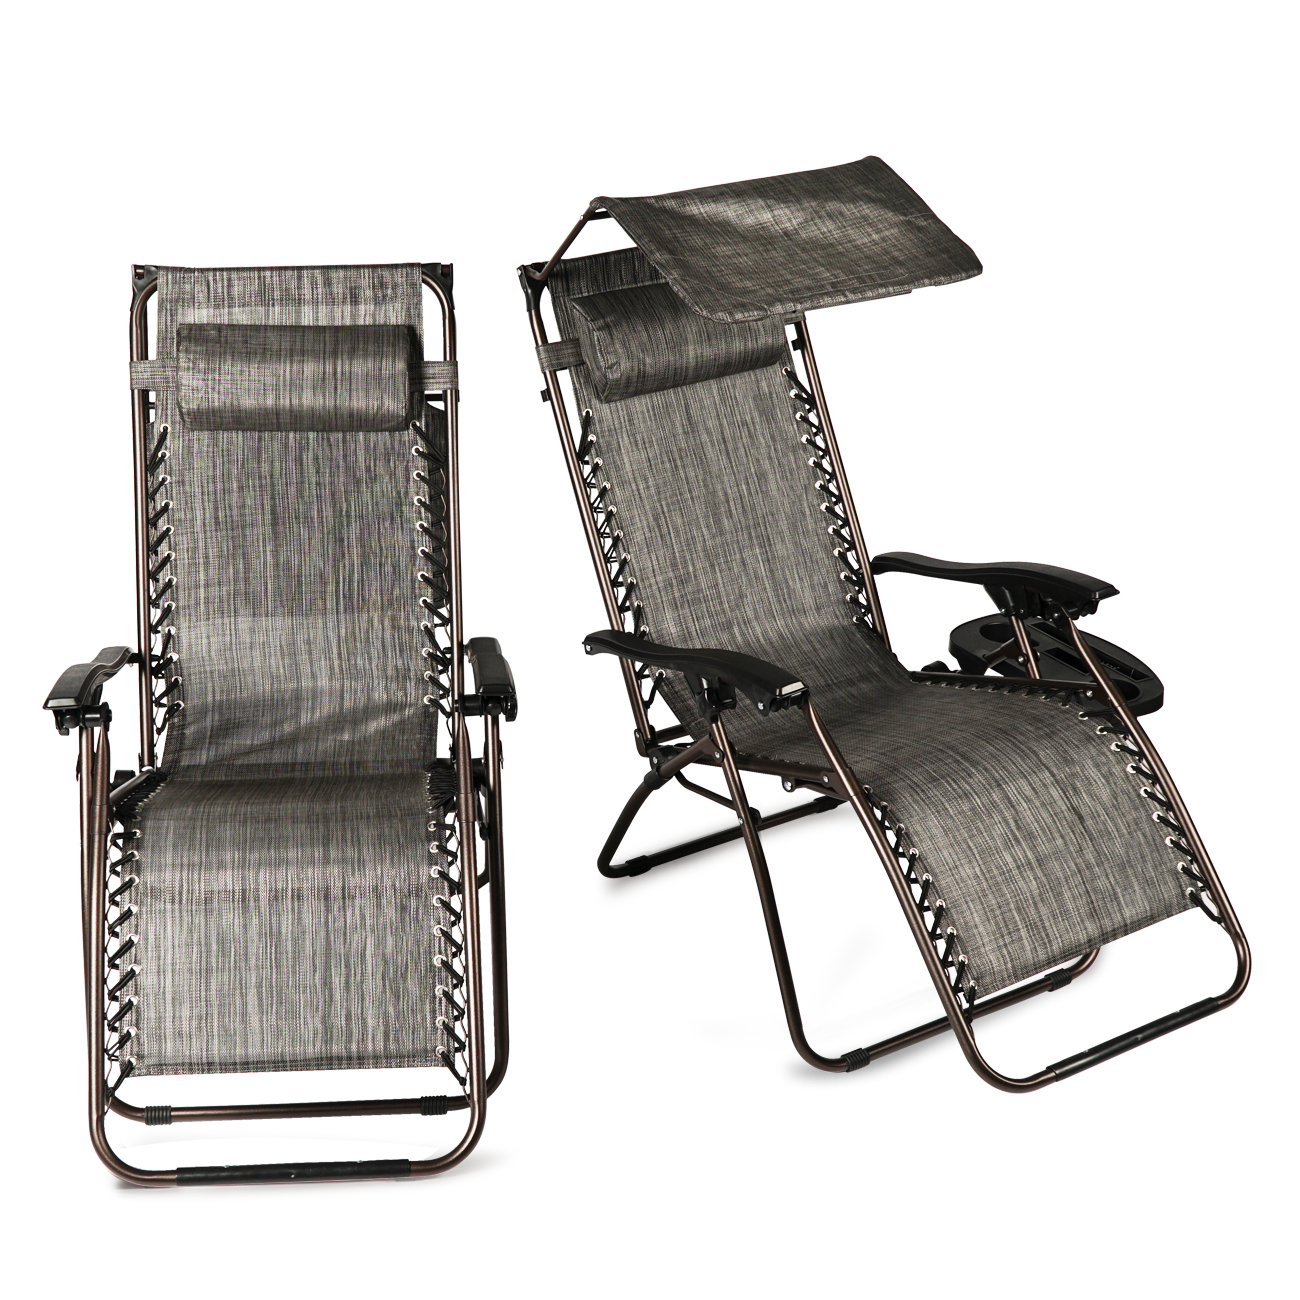 Beach Chair With Cup Holder New 2 Pcs Zero Gravity Folding Lounge Beach Chairs W